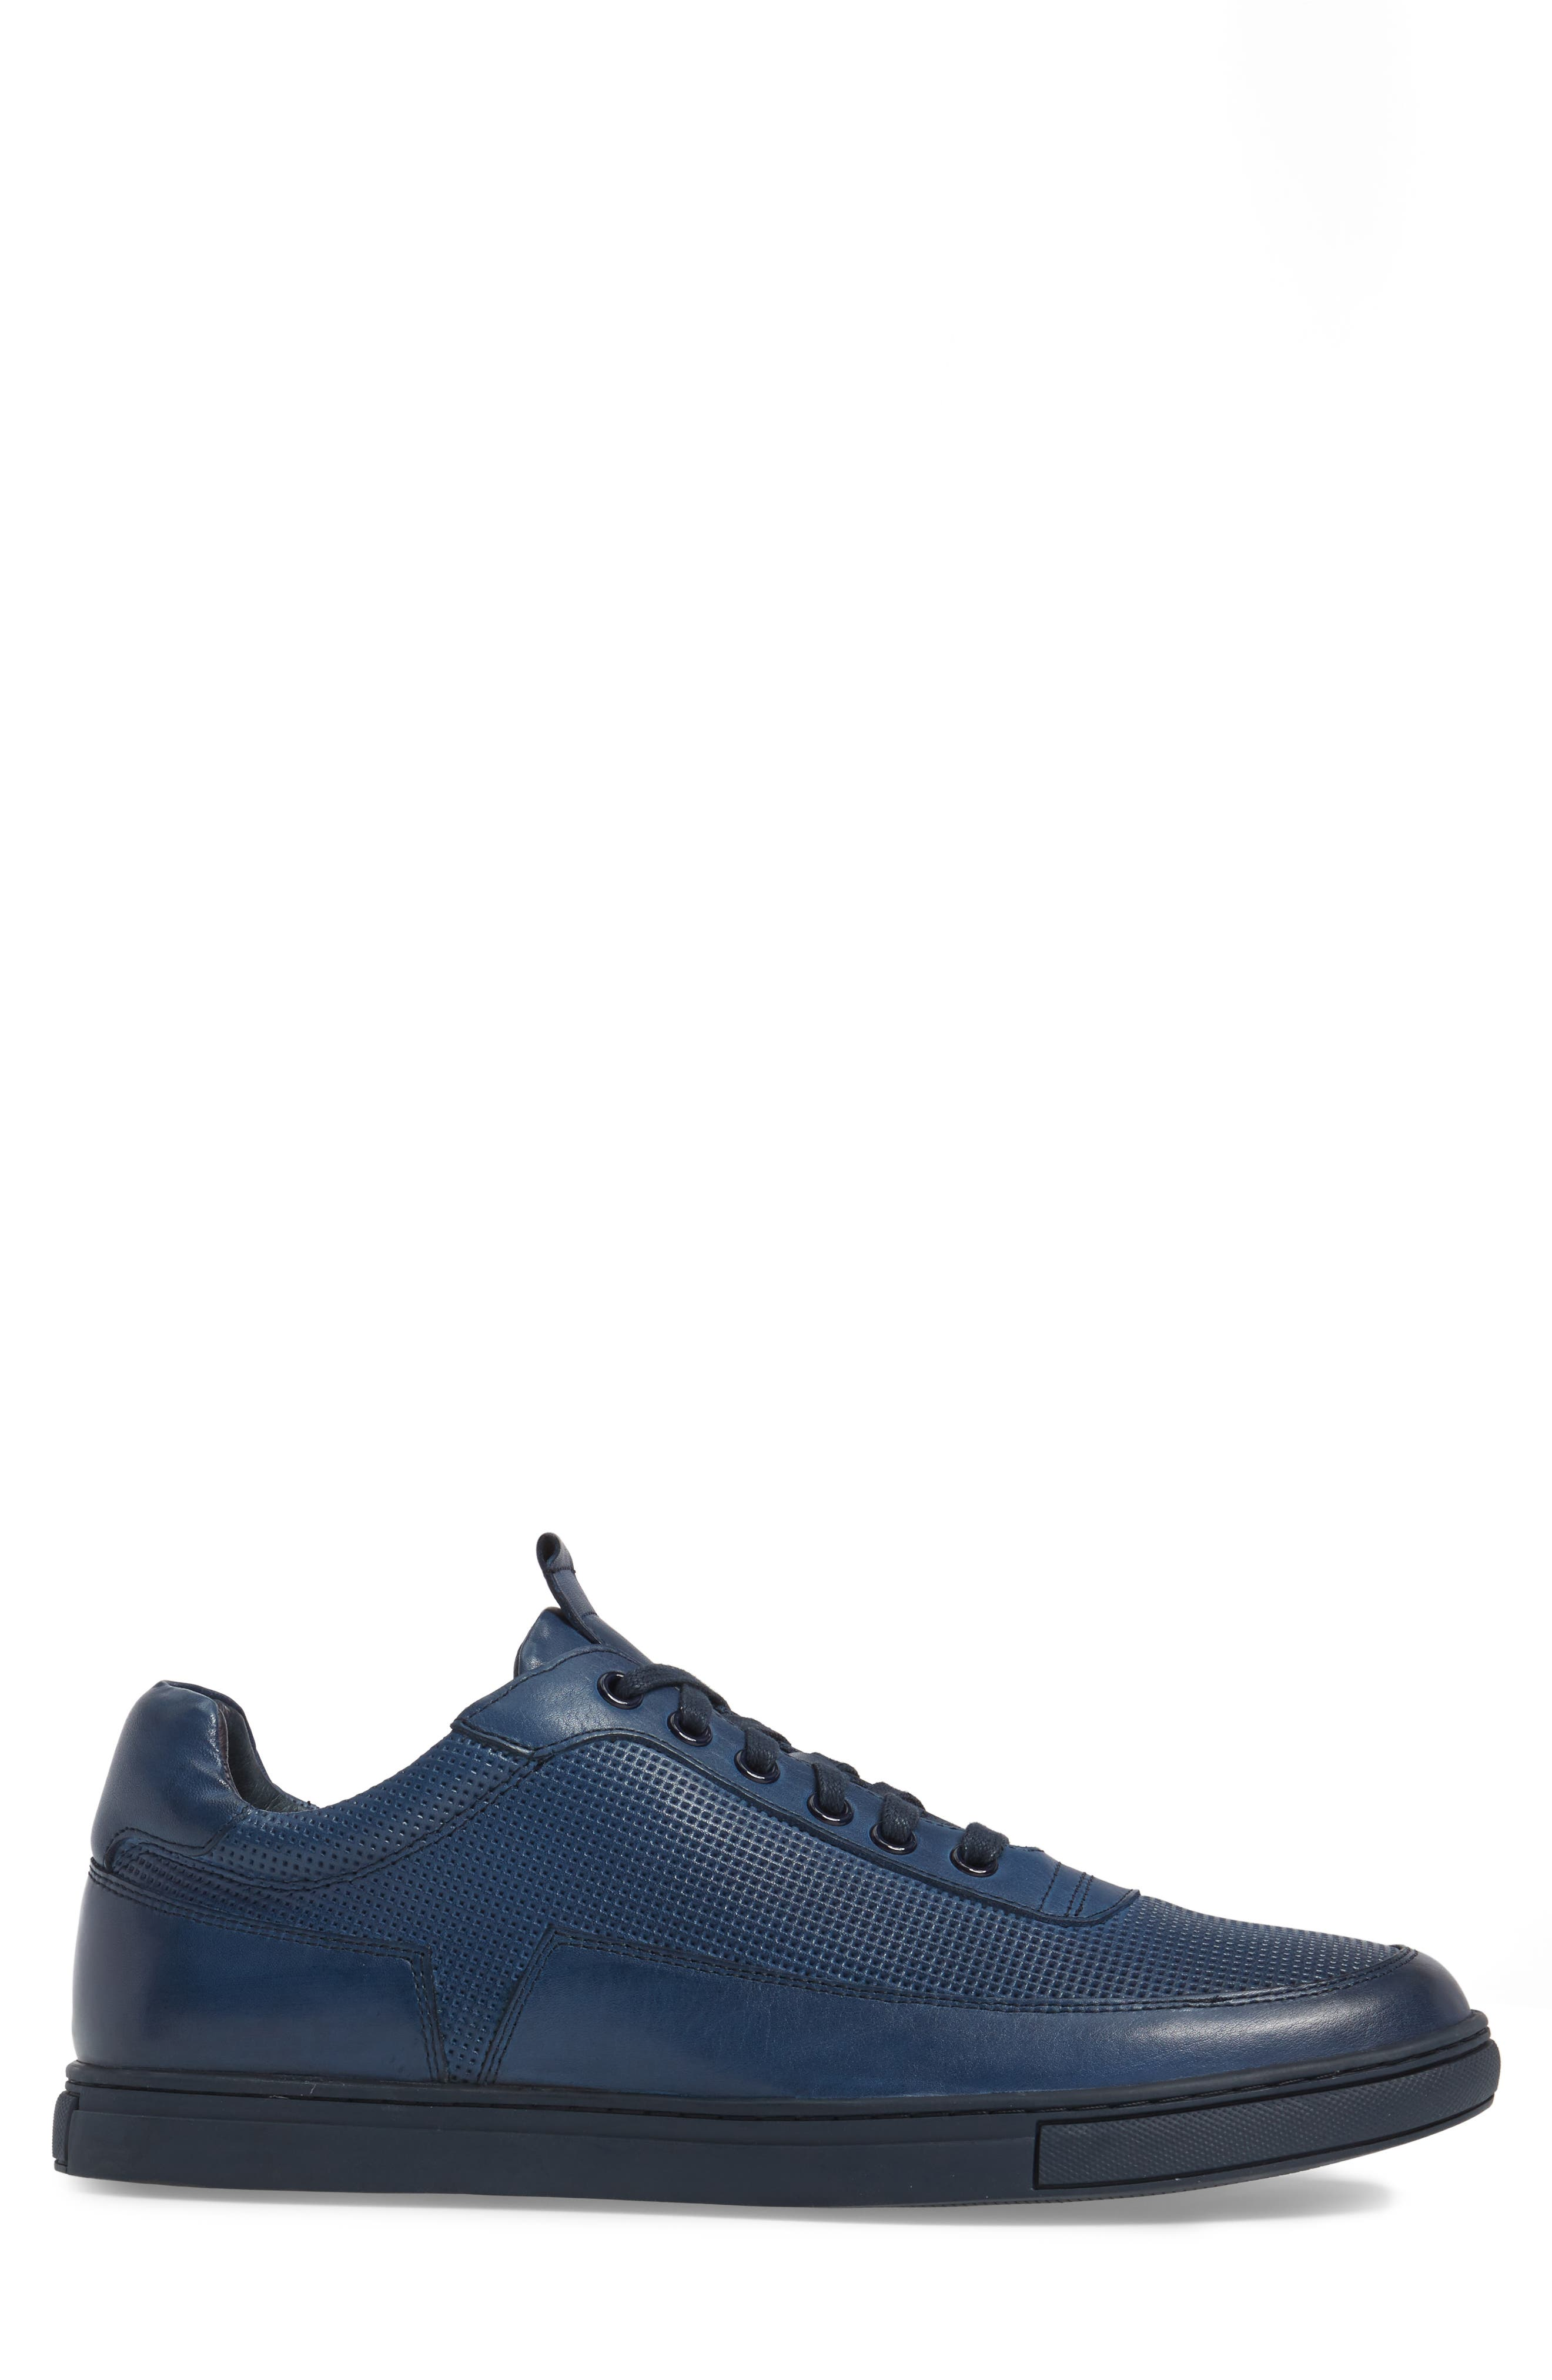 Harmony Sneaker,                             Alternate thumbnail 3, color,                             BLUE LEATHER